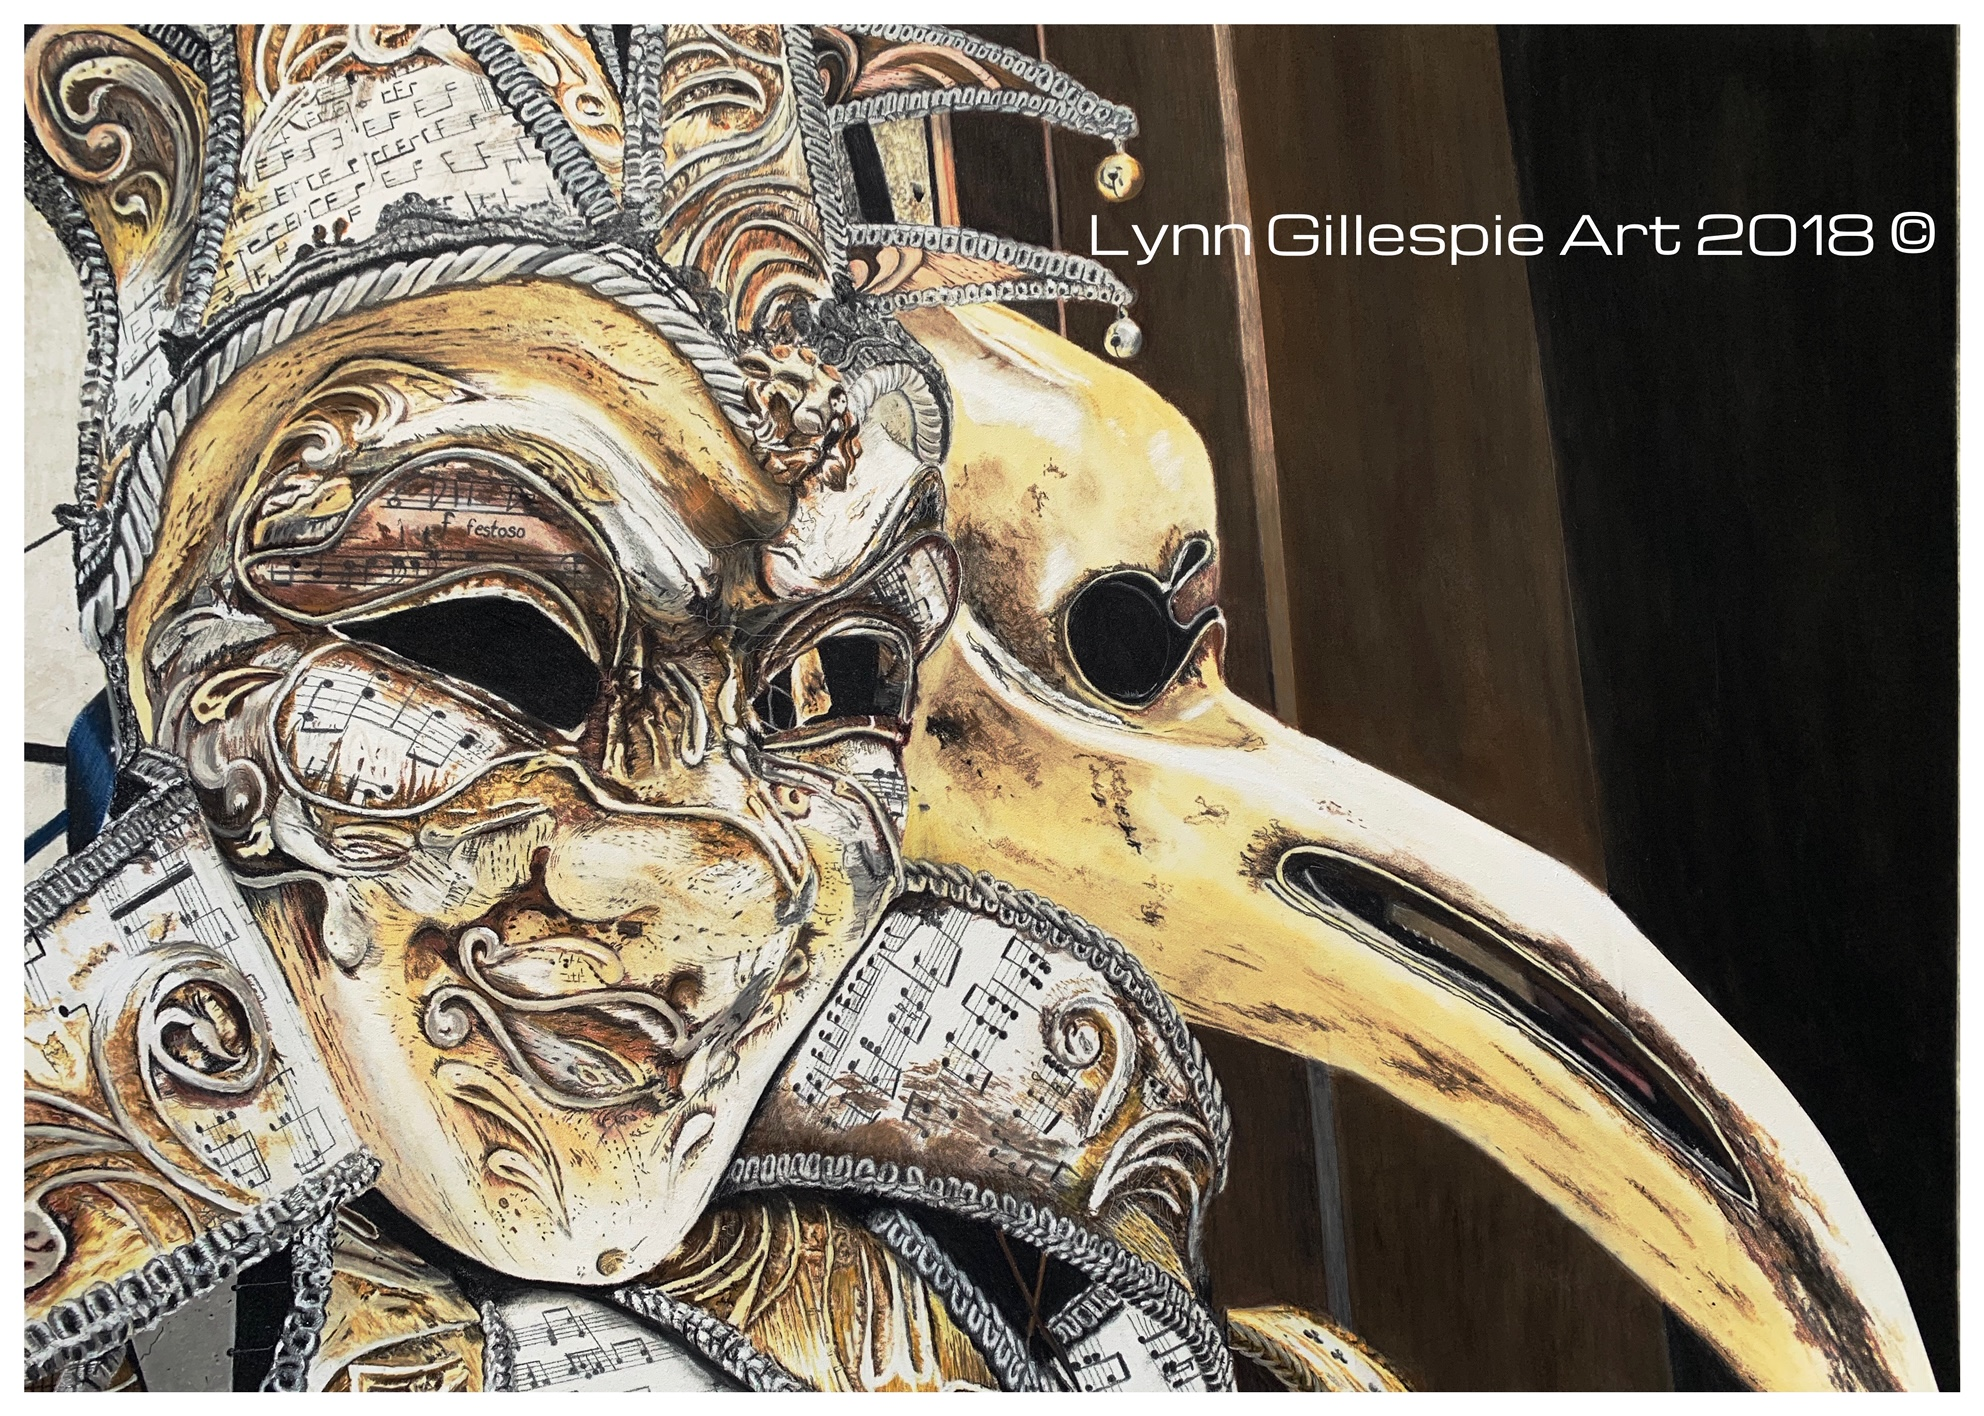 Exhibition -THE TRUST GREATER AUCKLAND ART AWARDS & EXHIBITION